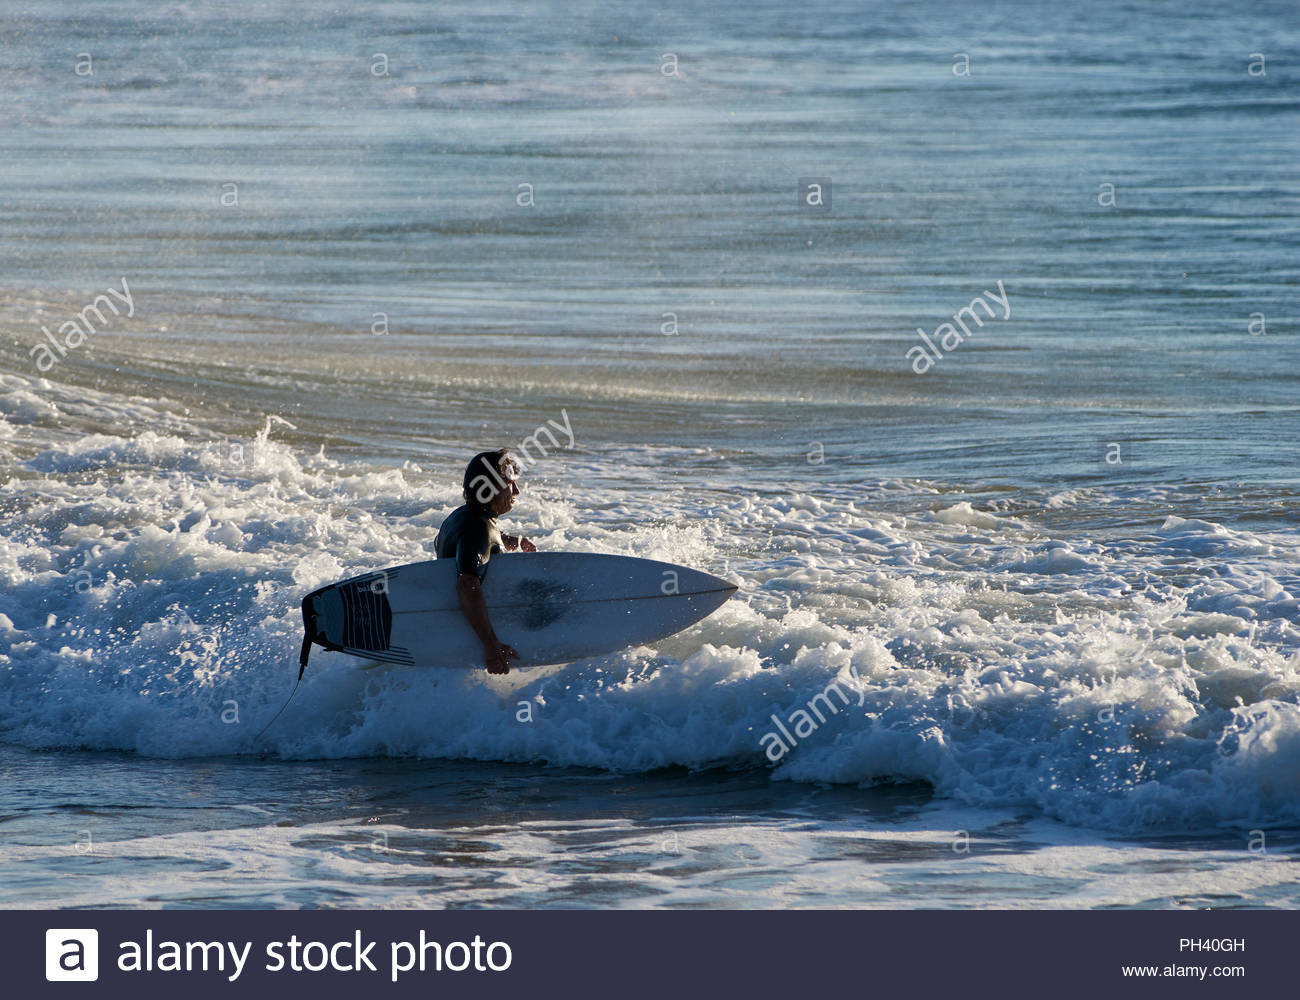 A man in a wet-suit, walks into the ocean with a surfboard under his arm, going for an early-morning surf; at Turners Beach, Yamba, NSW, Australia. Stock Photo